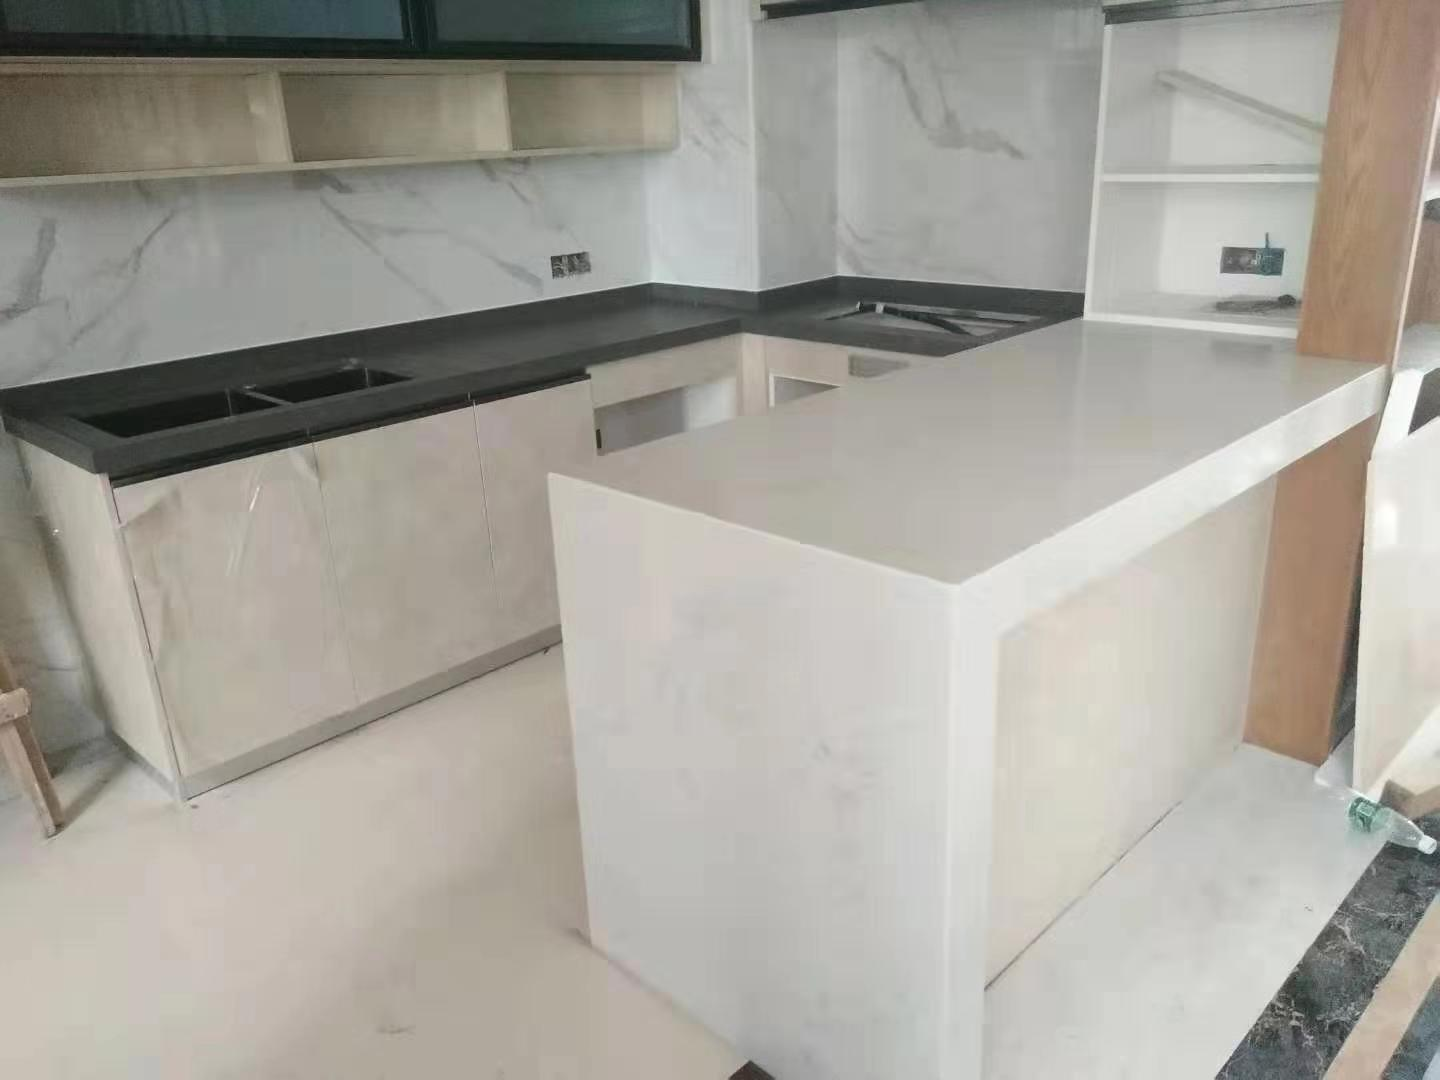 White Granite Quartz Kitchen Countertop Whole Sale Price on Sale Stone